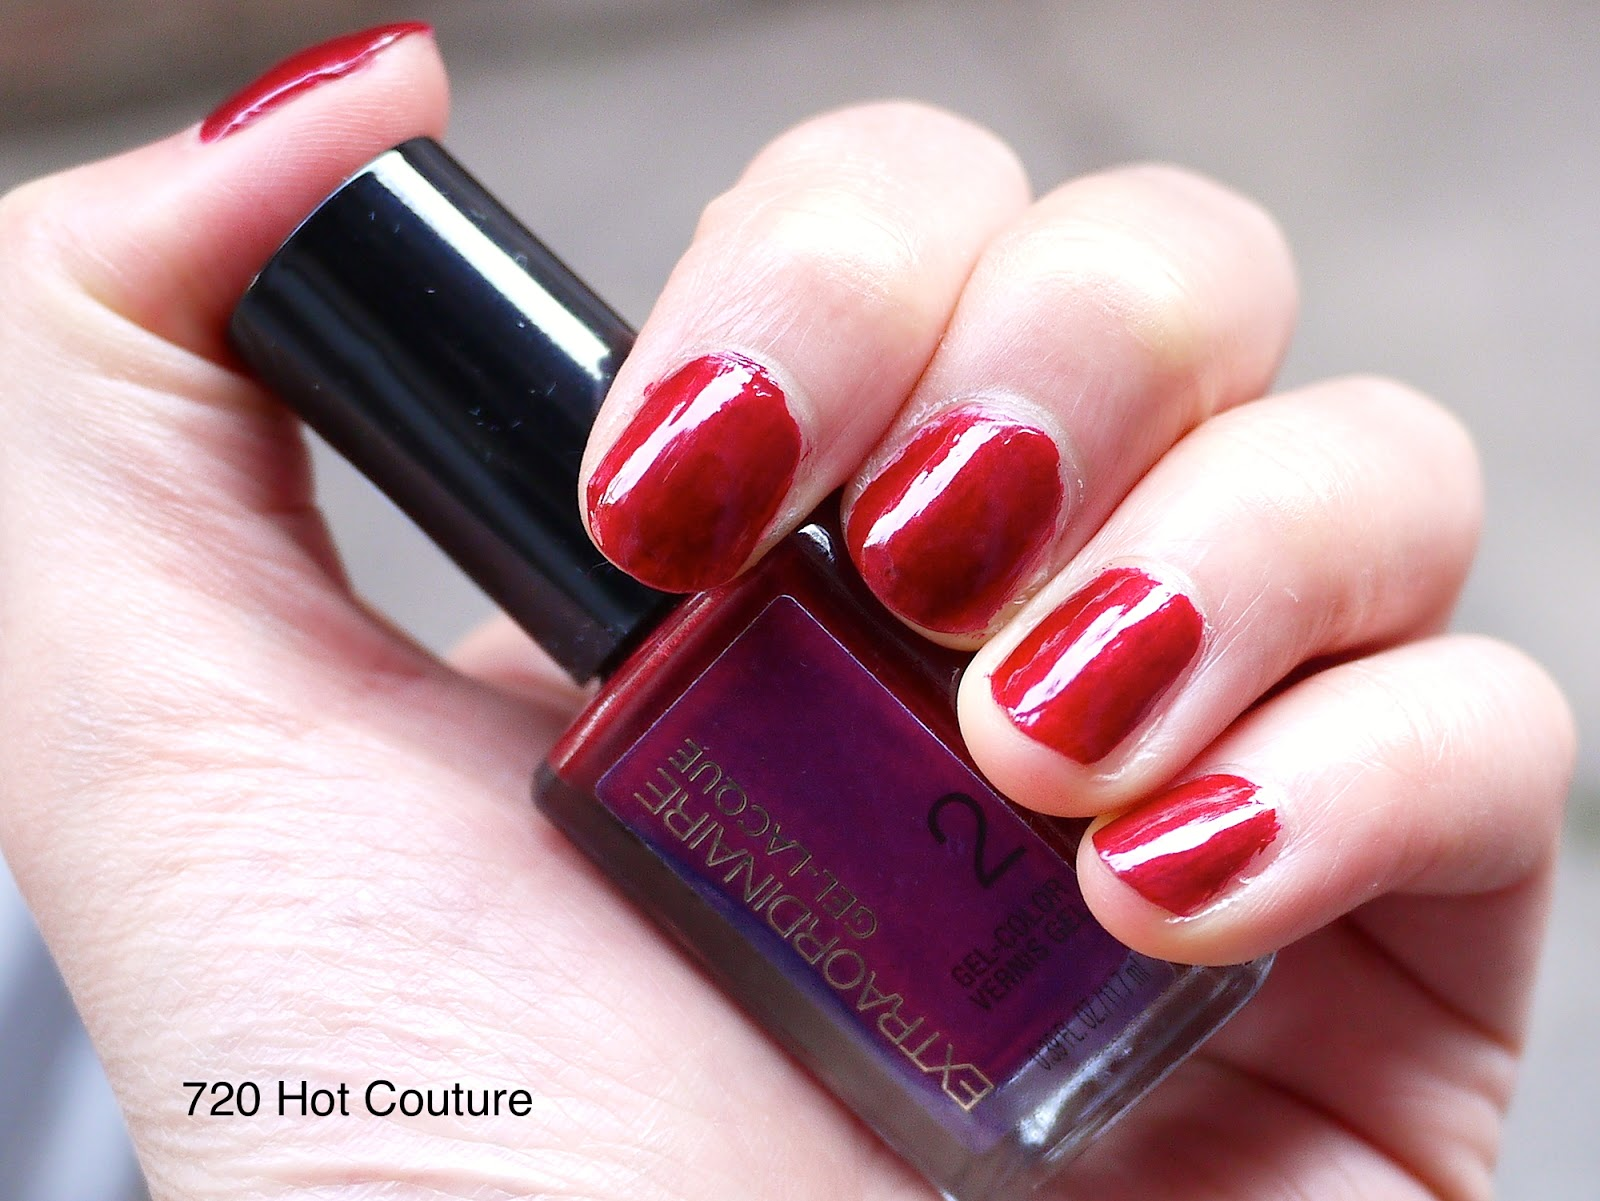 l'oreal extraordinaire gel-lacque 720 hot couture nail swatch